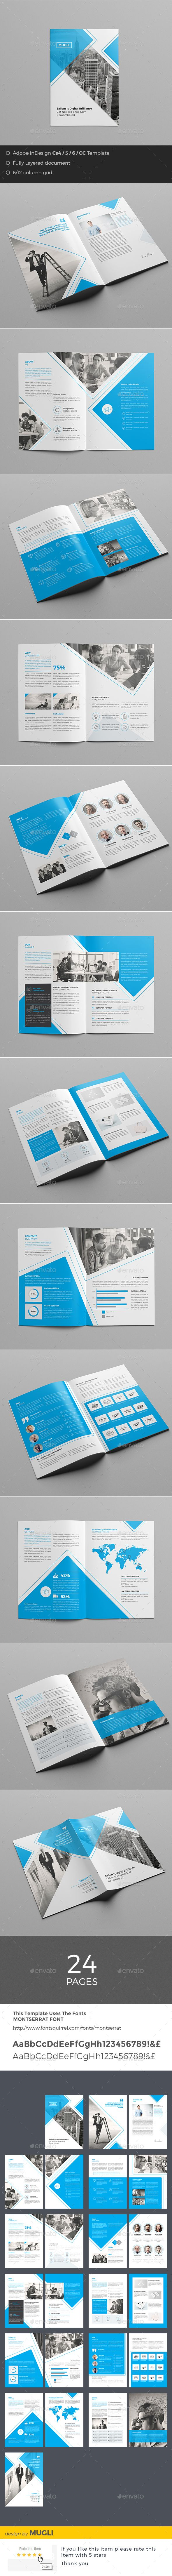 Business Brochure | Diseño editorial, Editorial y Revistas